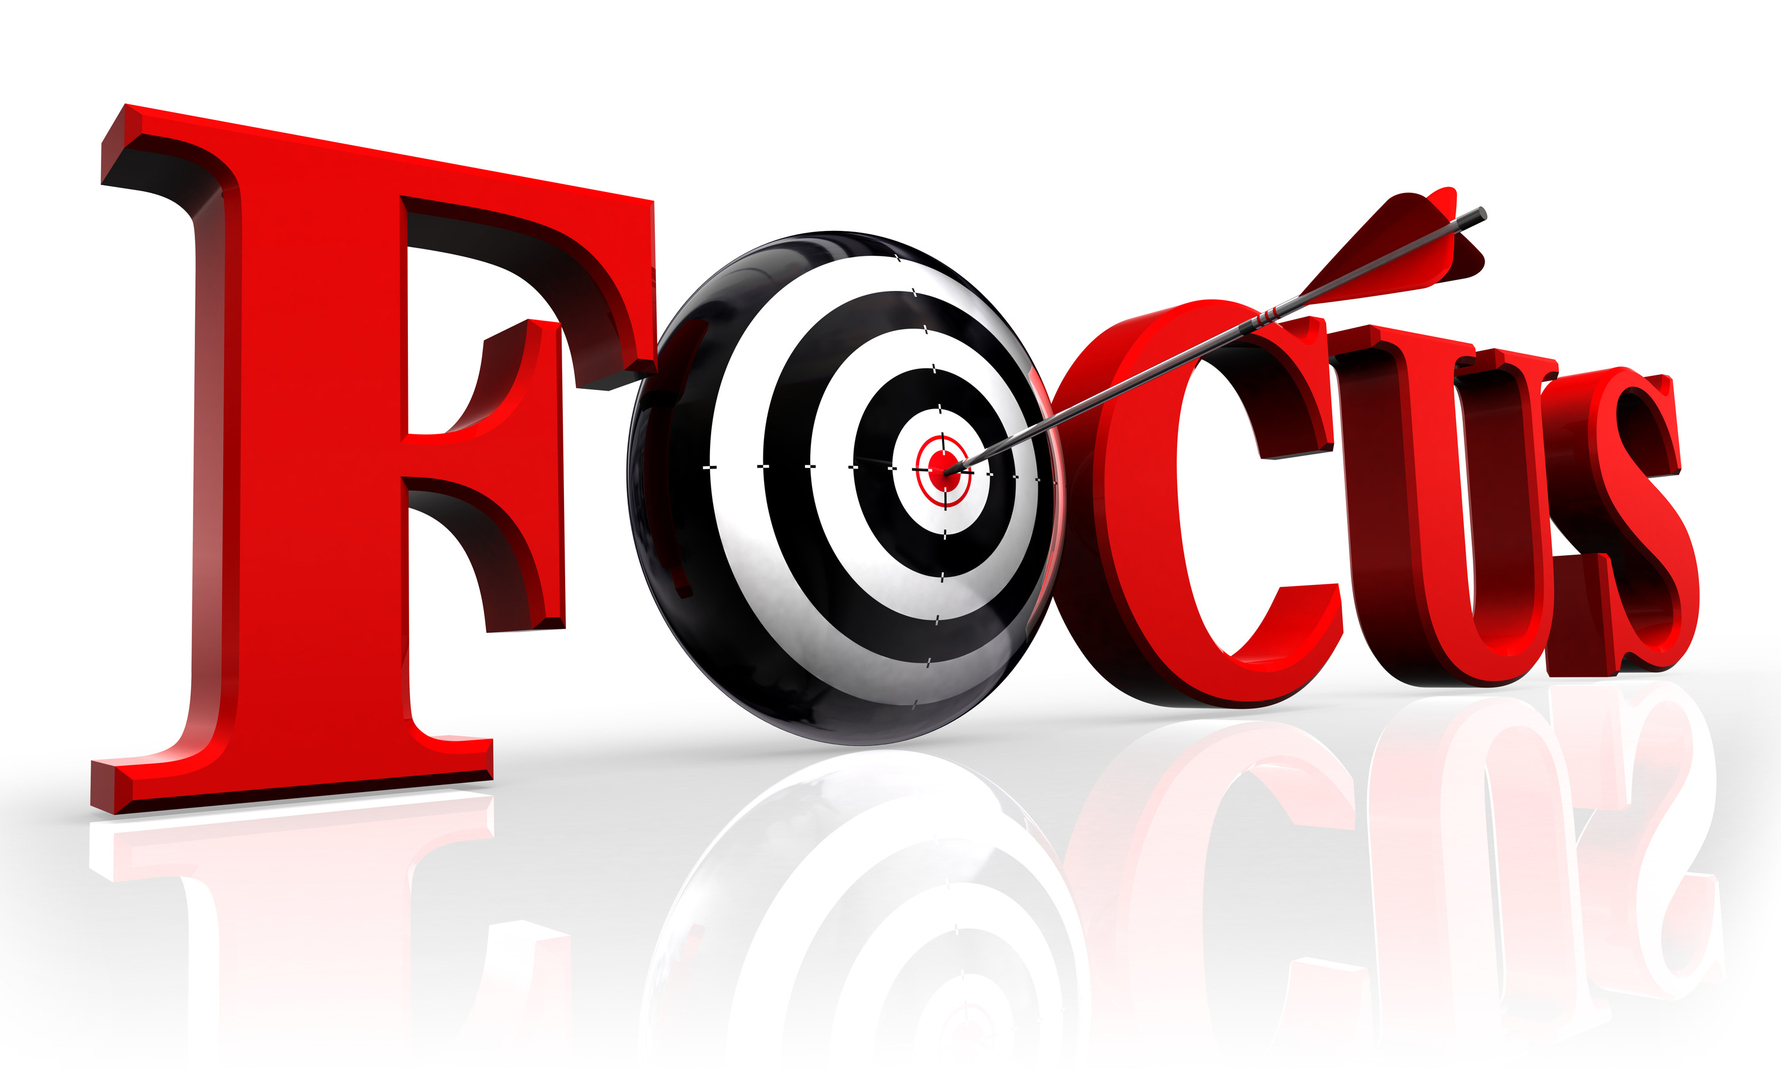 To create and maintain focus on your goals ...